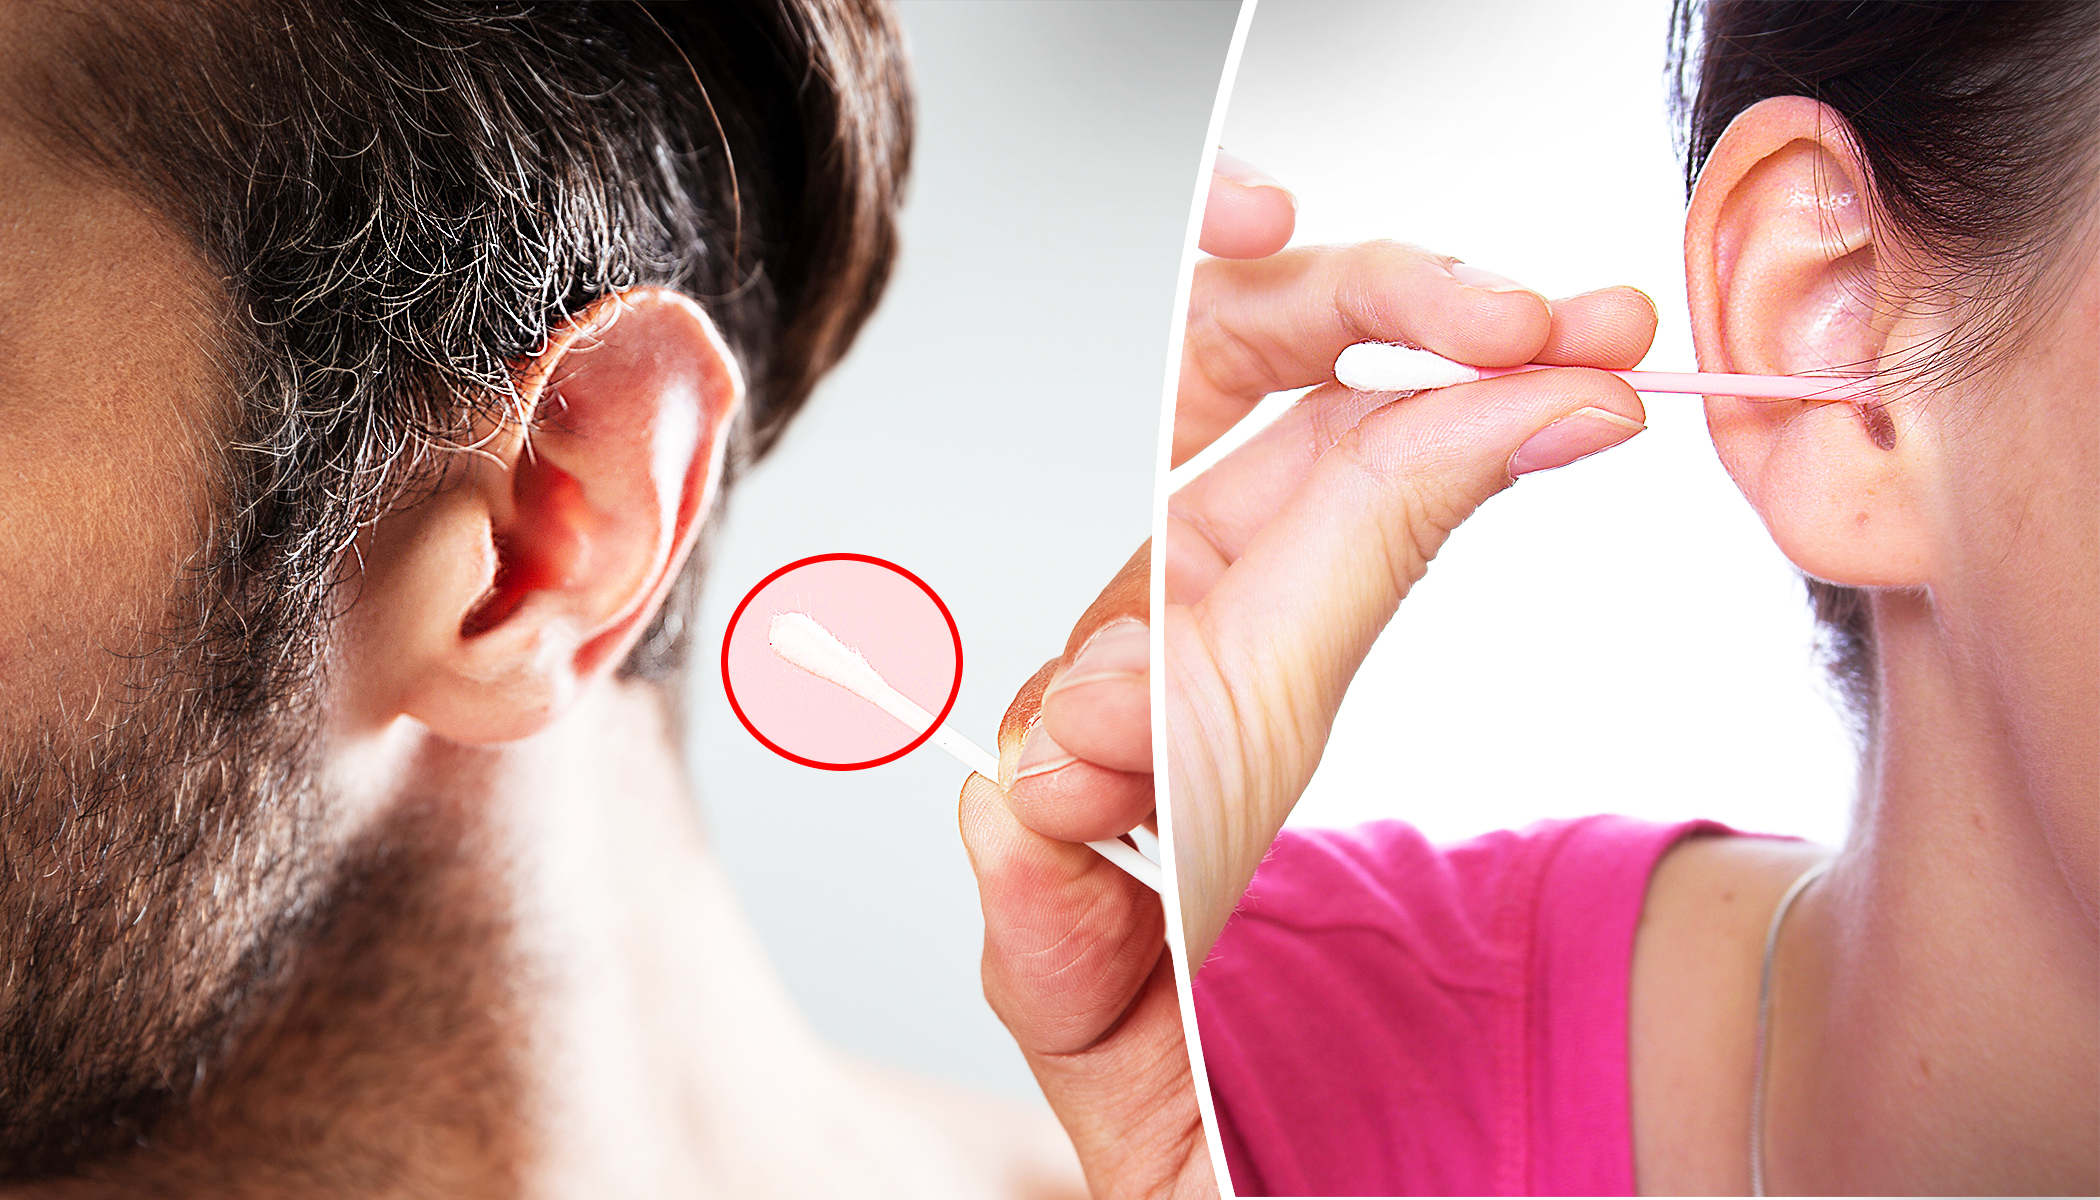 Doctors Warn People to Stop Using Q-tips to Clean Their Ears, and Here's Why